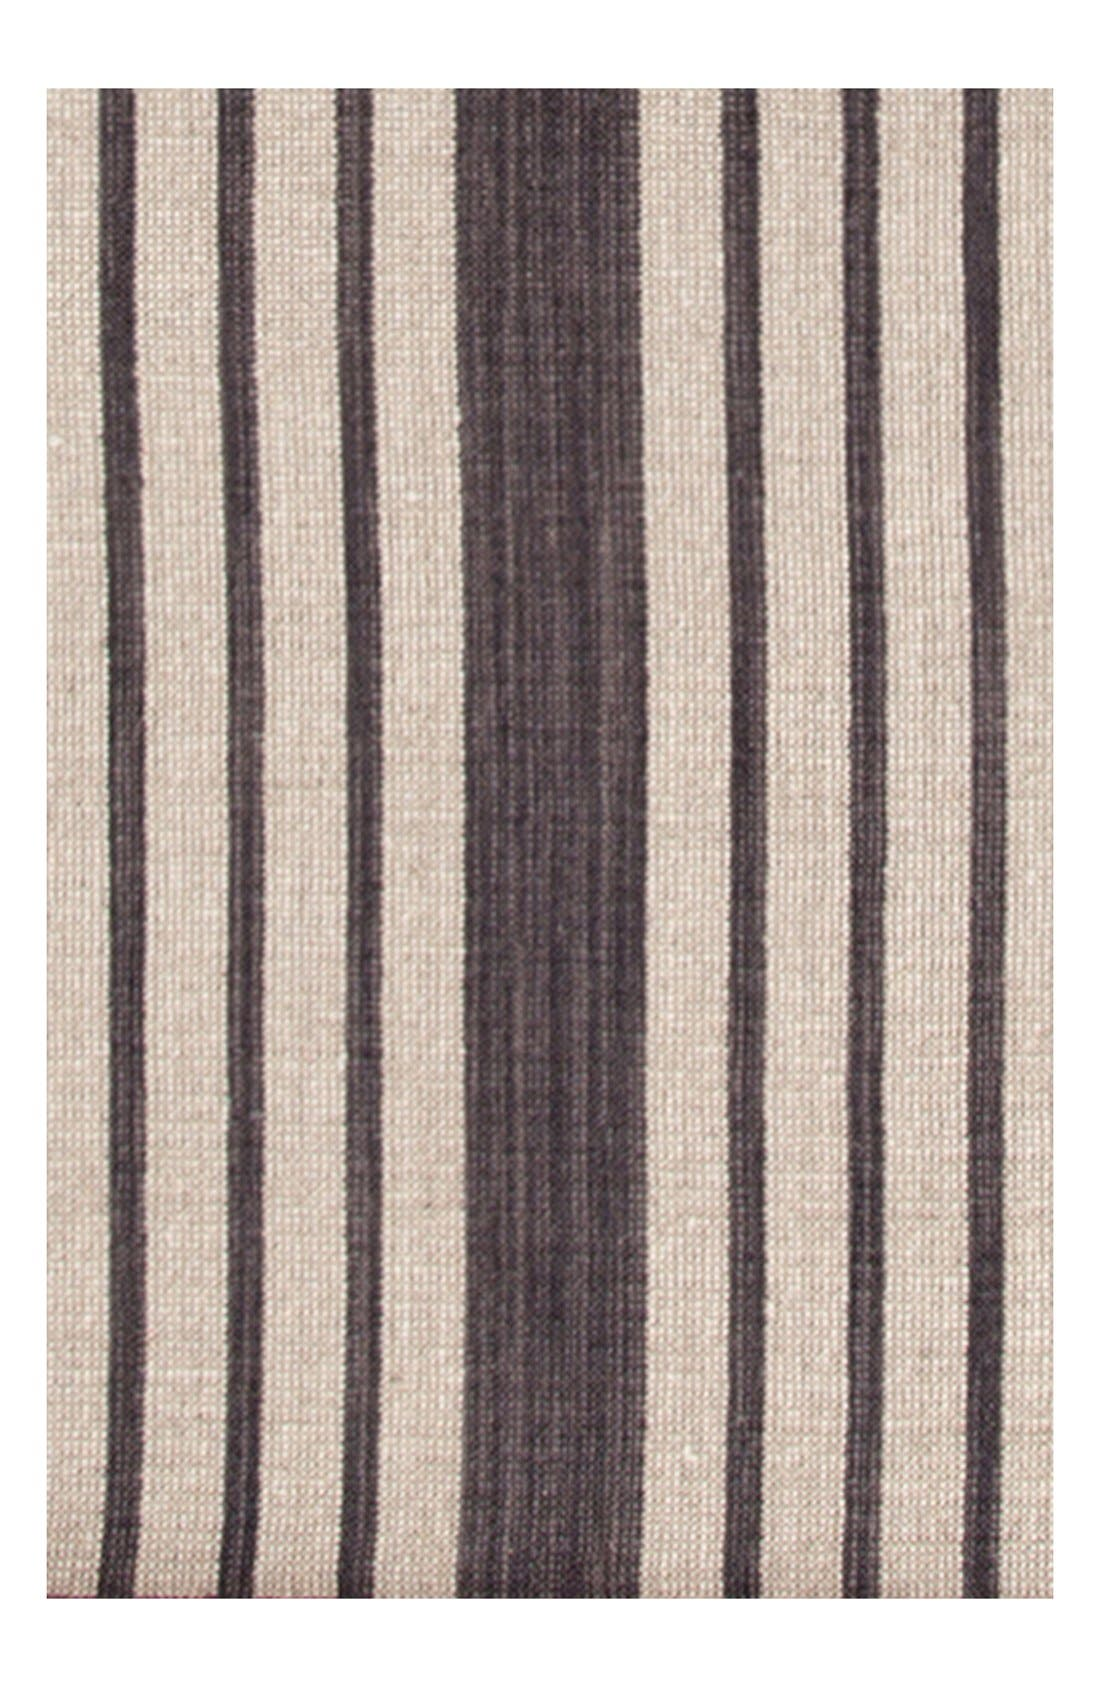 'Lenox' Stripe Rug,                         Main,                         color, Charcoal